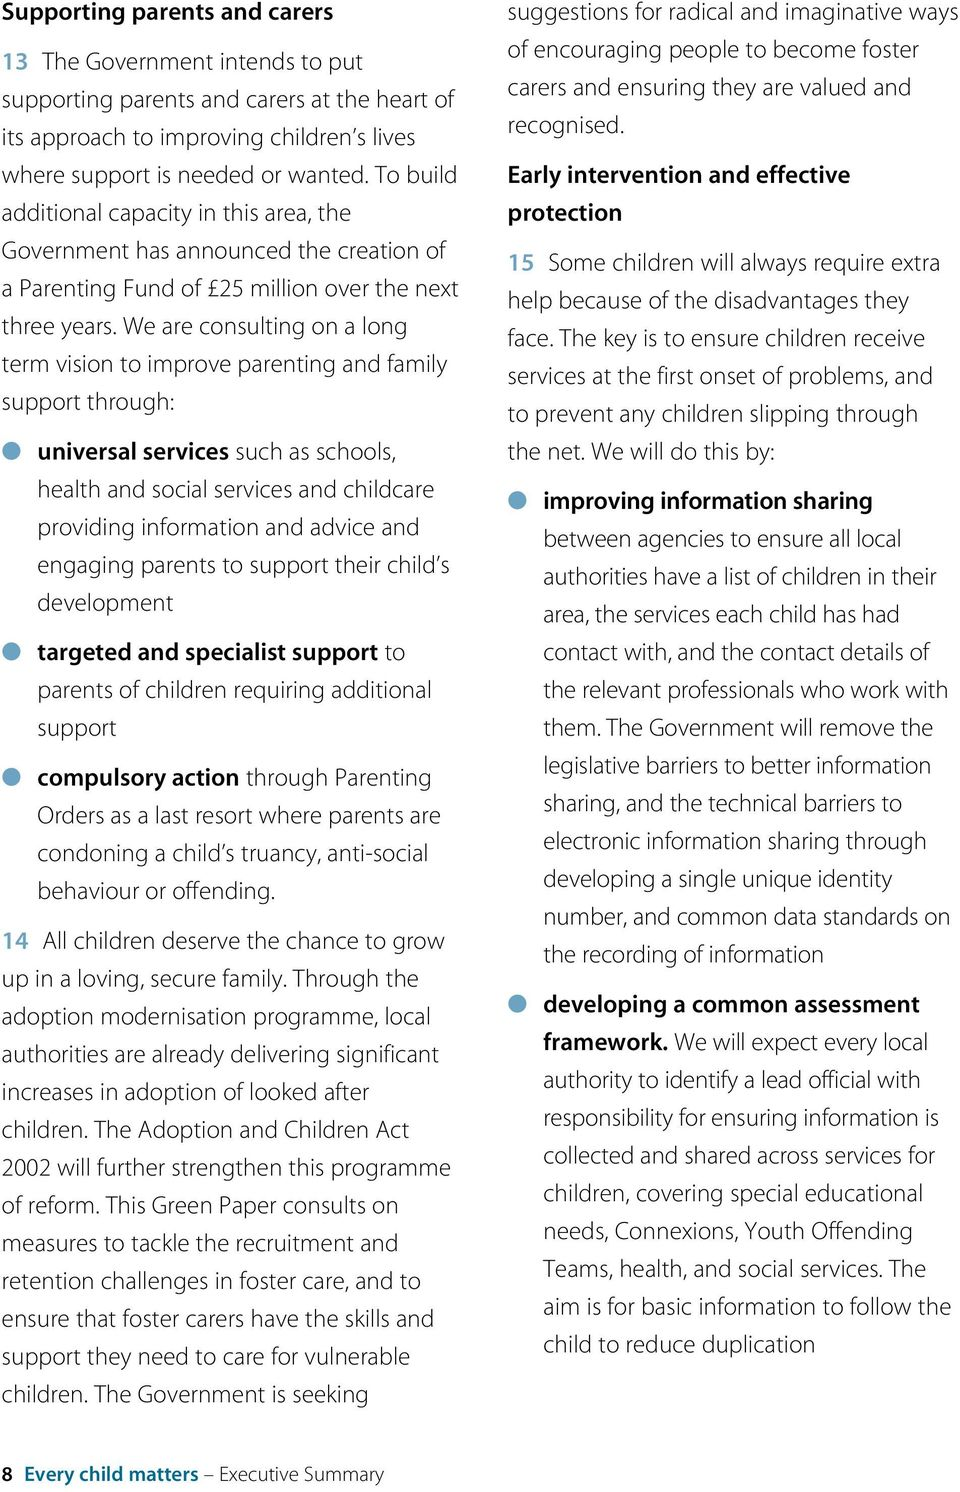 We are consulting on a long term vision to improve parenting and family support through: universal services such as schools, health and social services and childcare providing information and advice